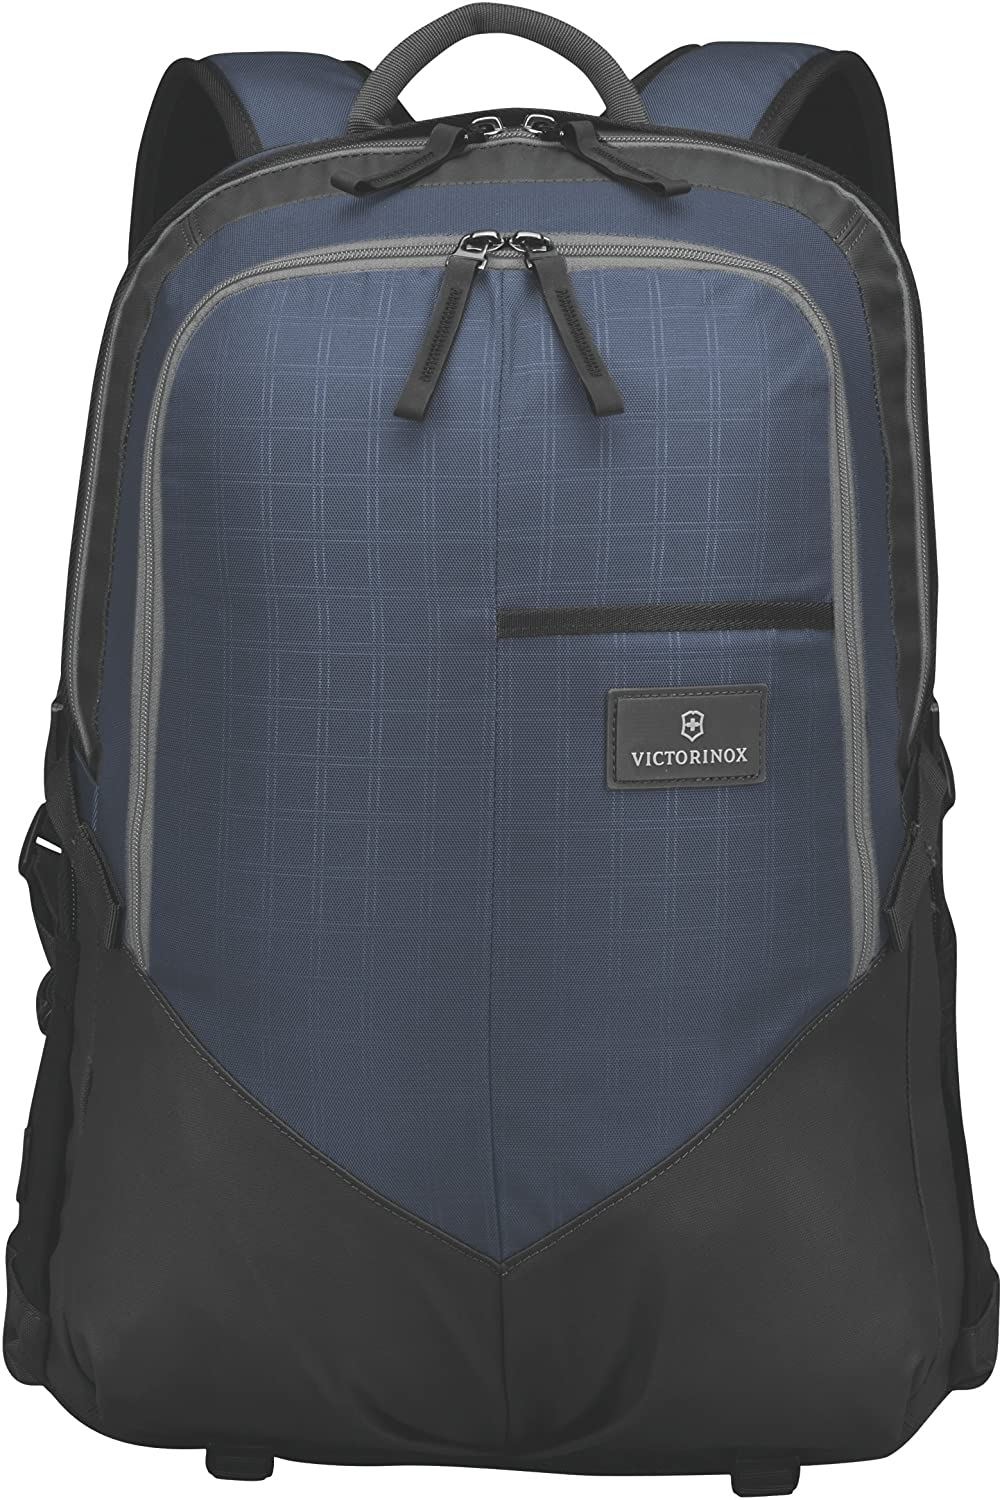 d04fc6ce4892 Victorinox Altmont 3.0 Deluxe Laptop Backpack, Navy/Black